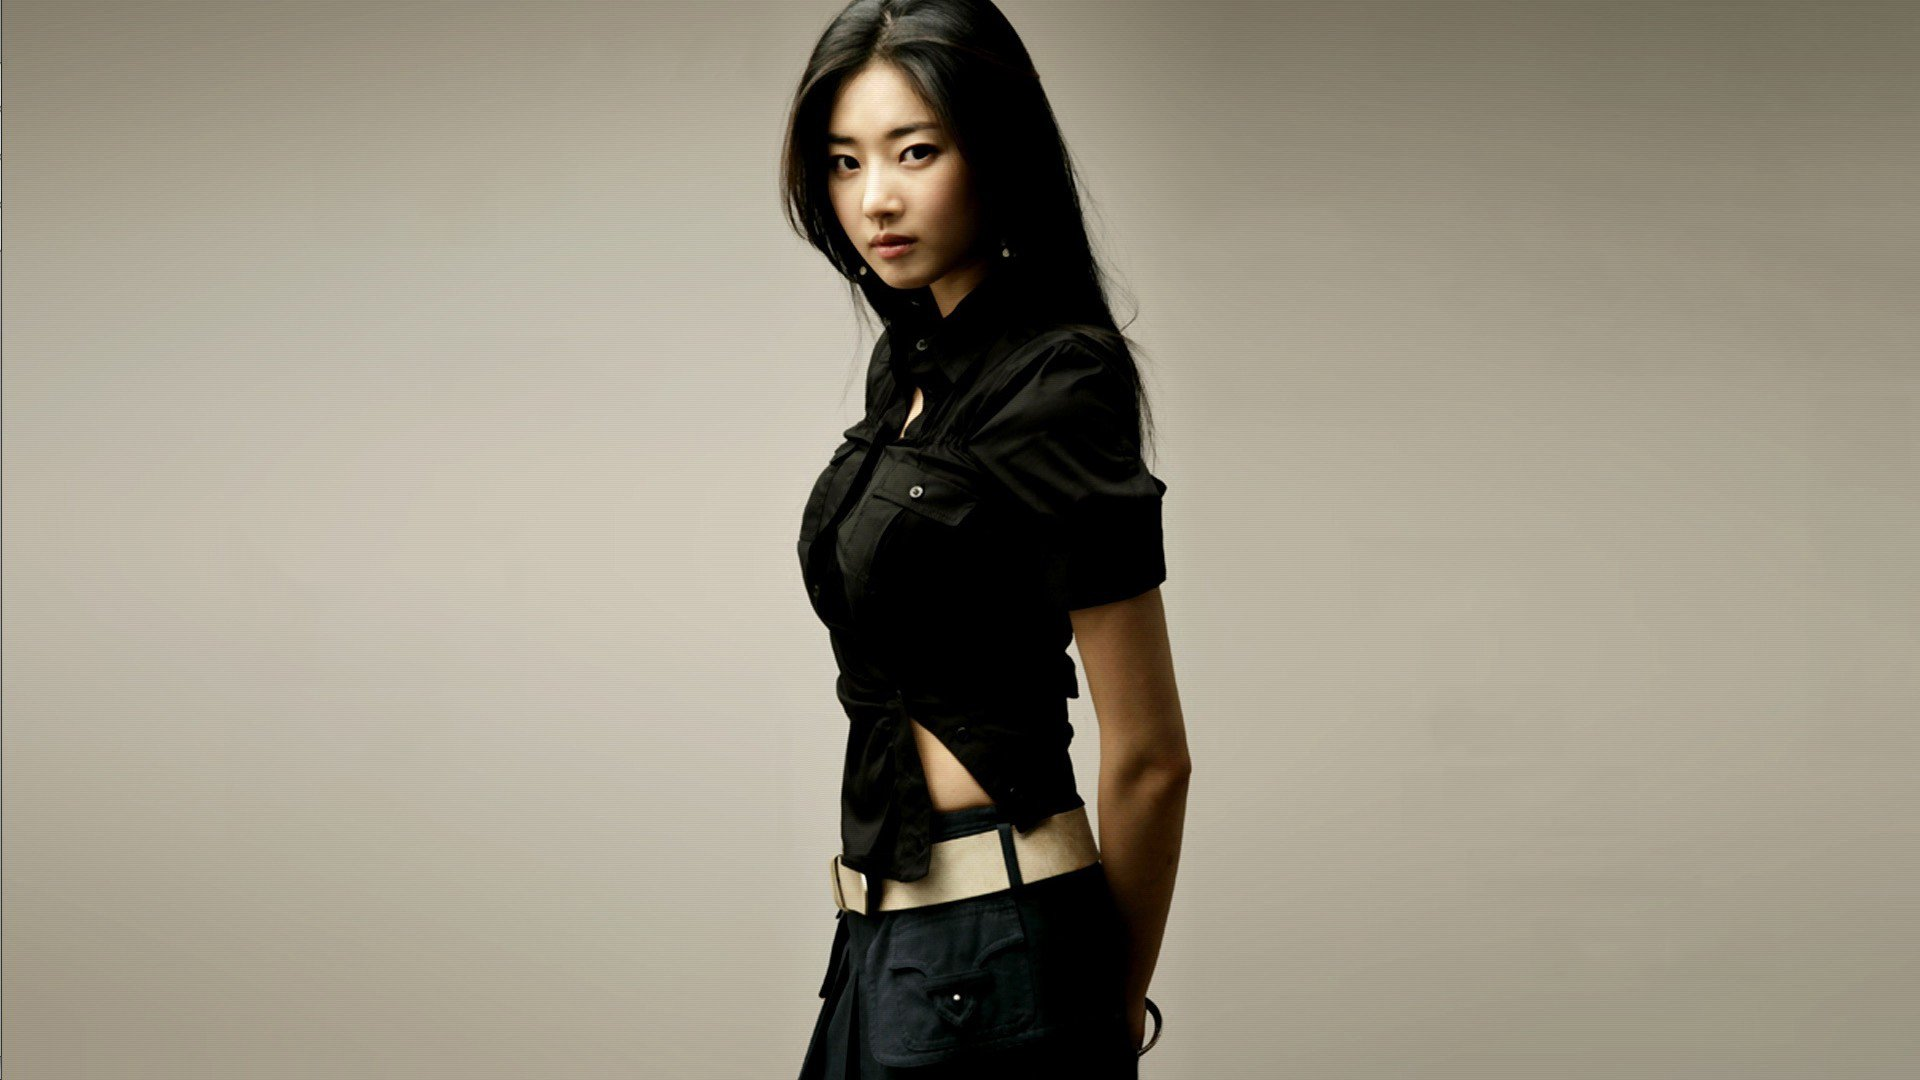 69 actresses south korea hd wallpapers background images hd wallpaper background image id555595 voltagebd Images